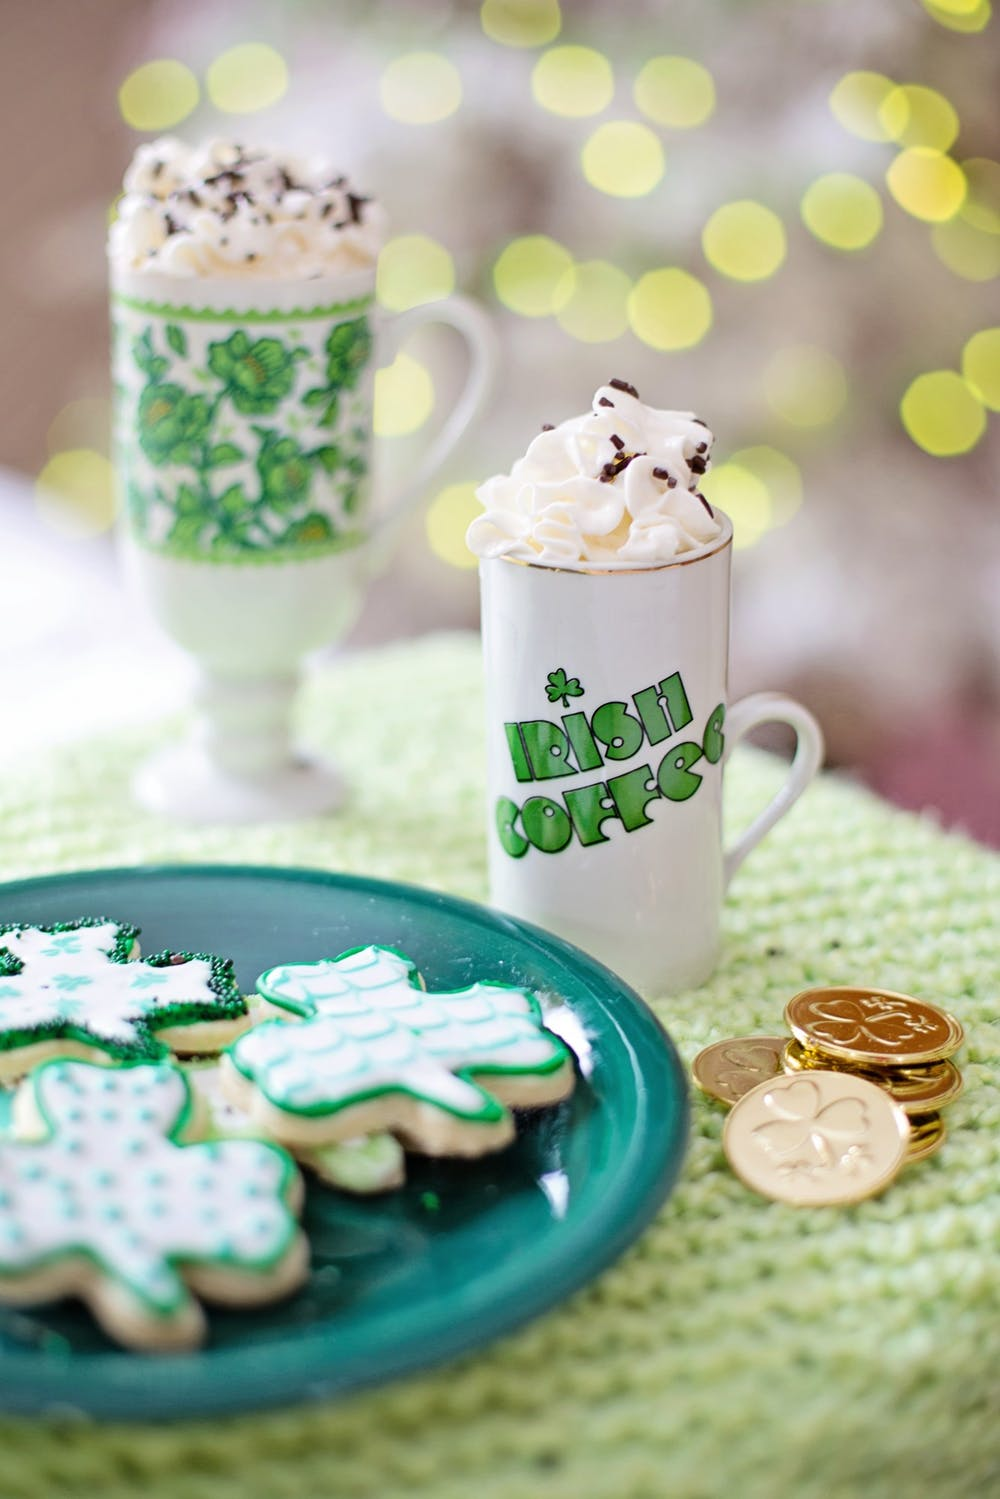 4 ways to celebrate St. Patrick's Day this year